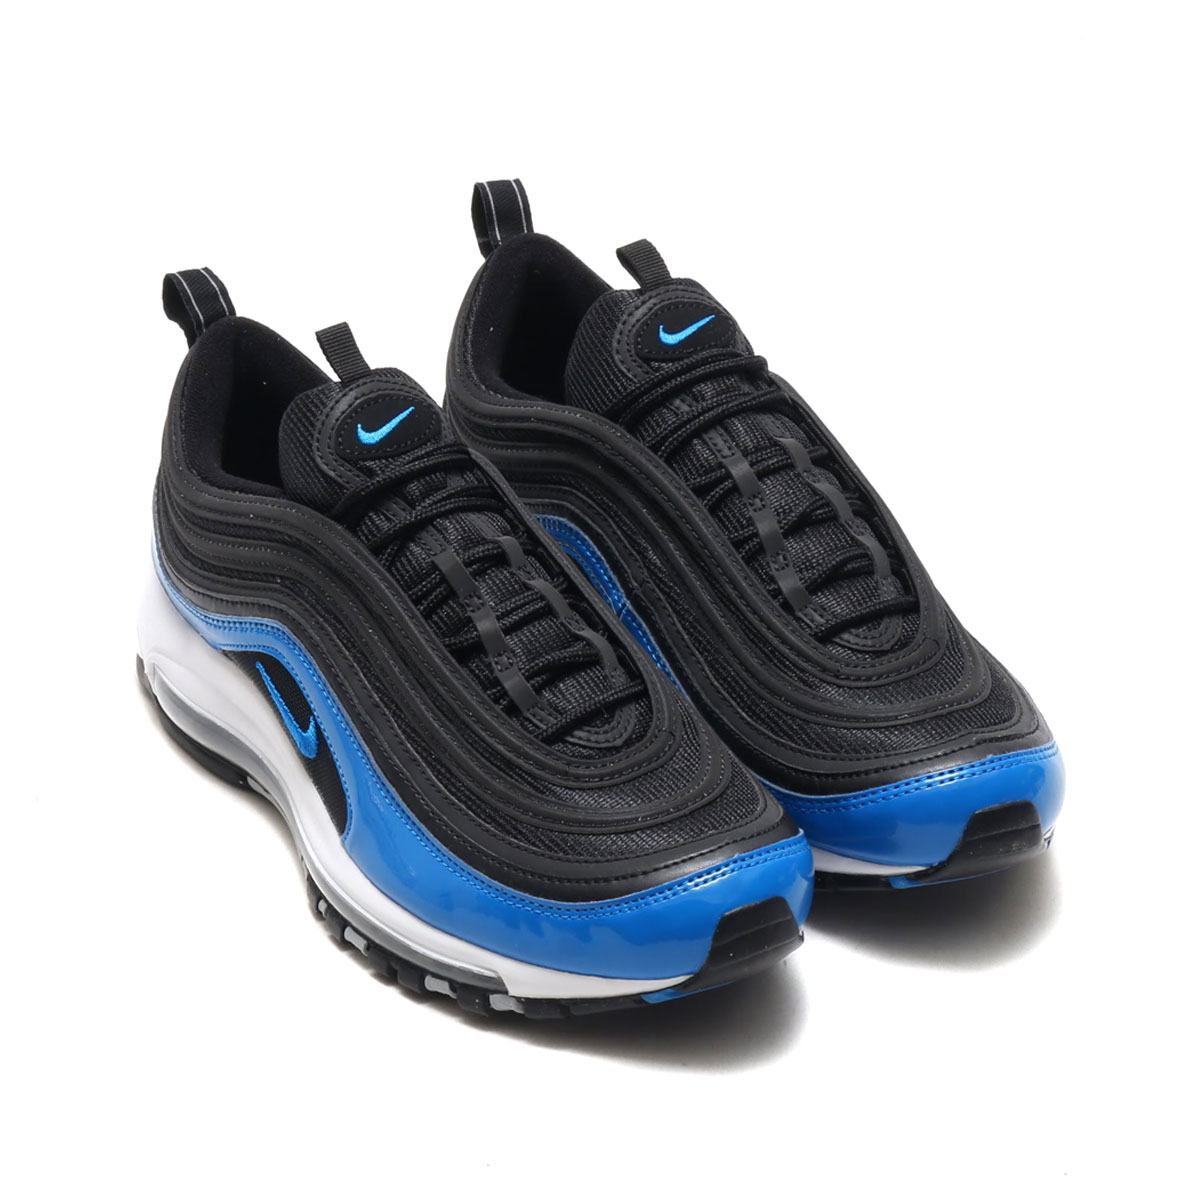 super popular 6a060 3fd52 NIKE AIR MAX 97 (Kie Ney AMAX 97) (BLACK BLUE NEBULA-WOLF GREY-WHITE) 18SU-I